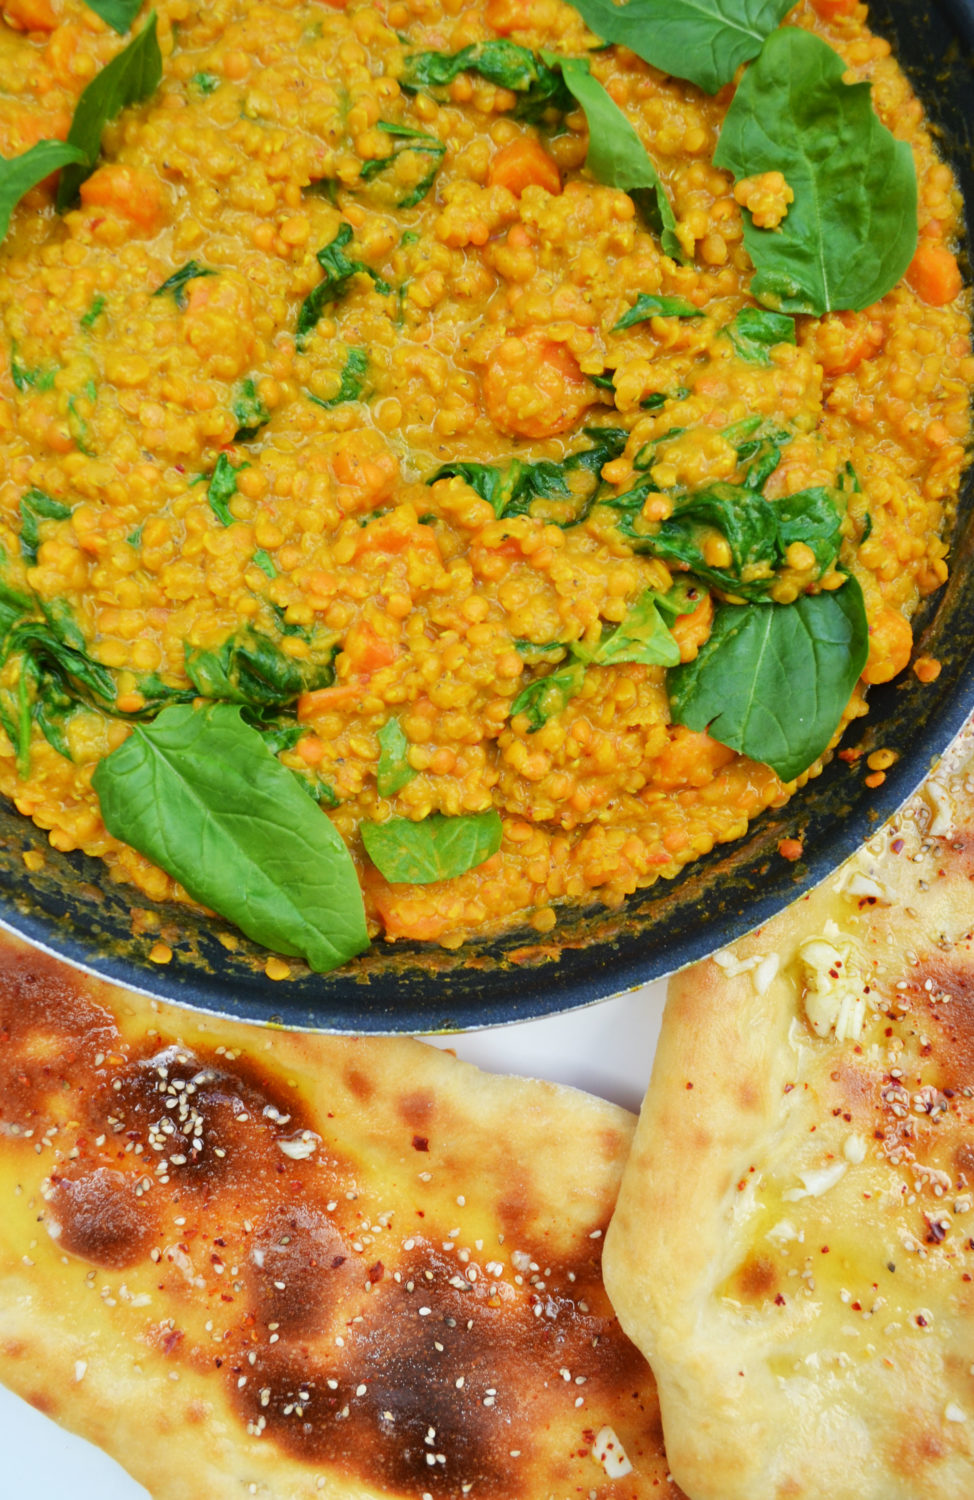 Ein Abstecher nach Indien! Linsen-Spinat-Curry mit Naan-Brot